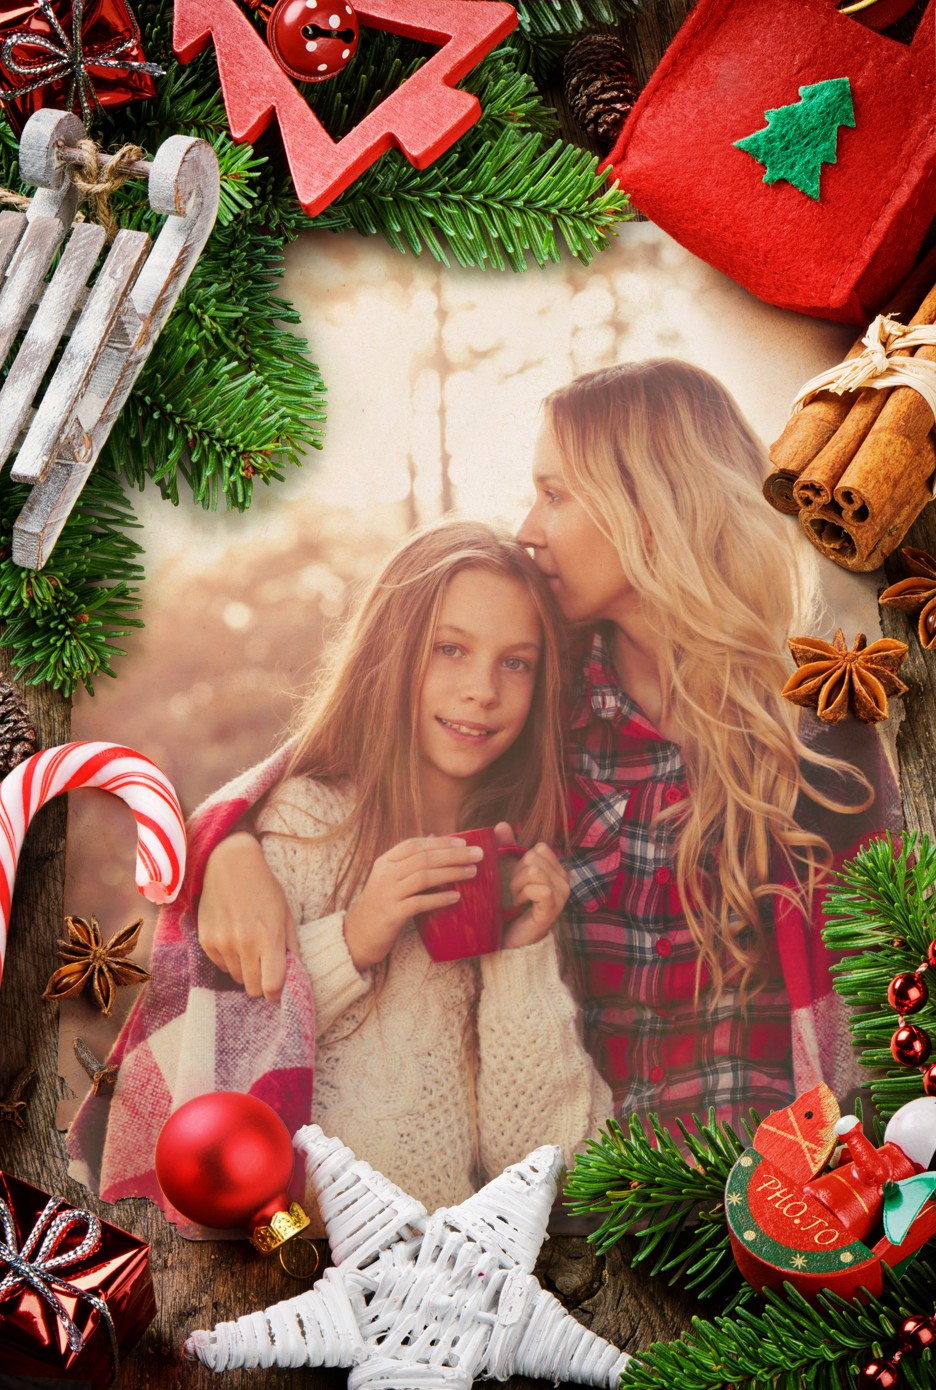 A photo of mother and daughter in a Christmas frame